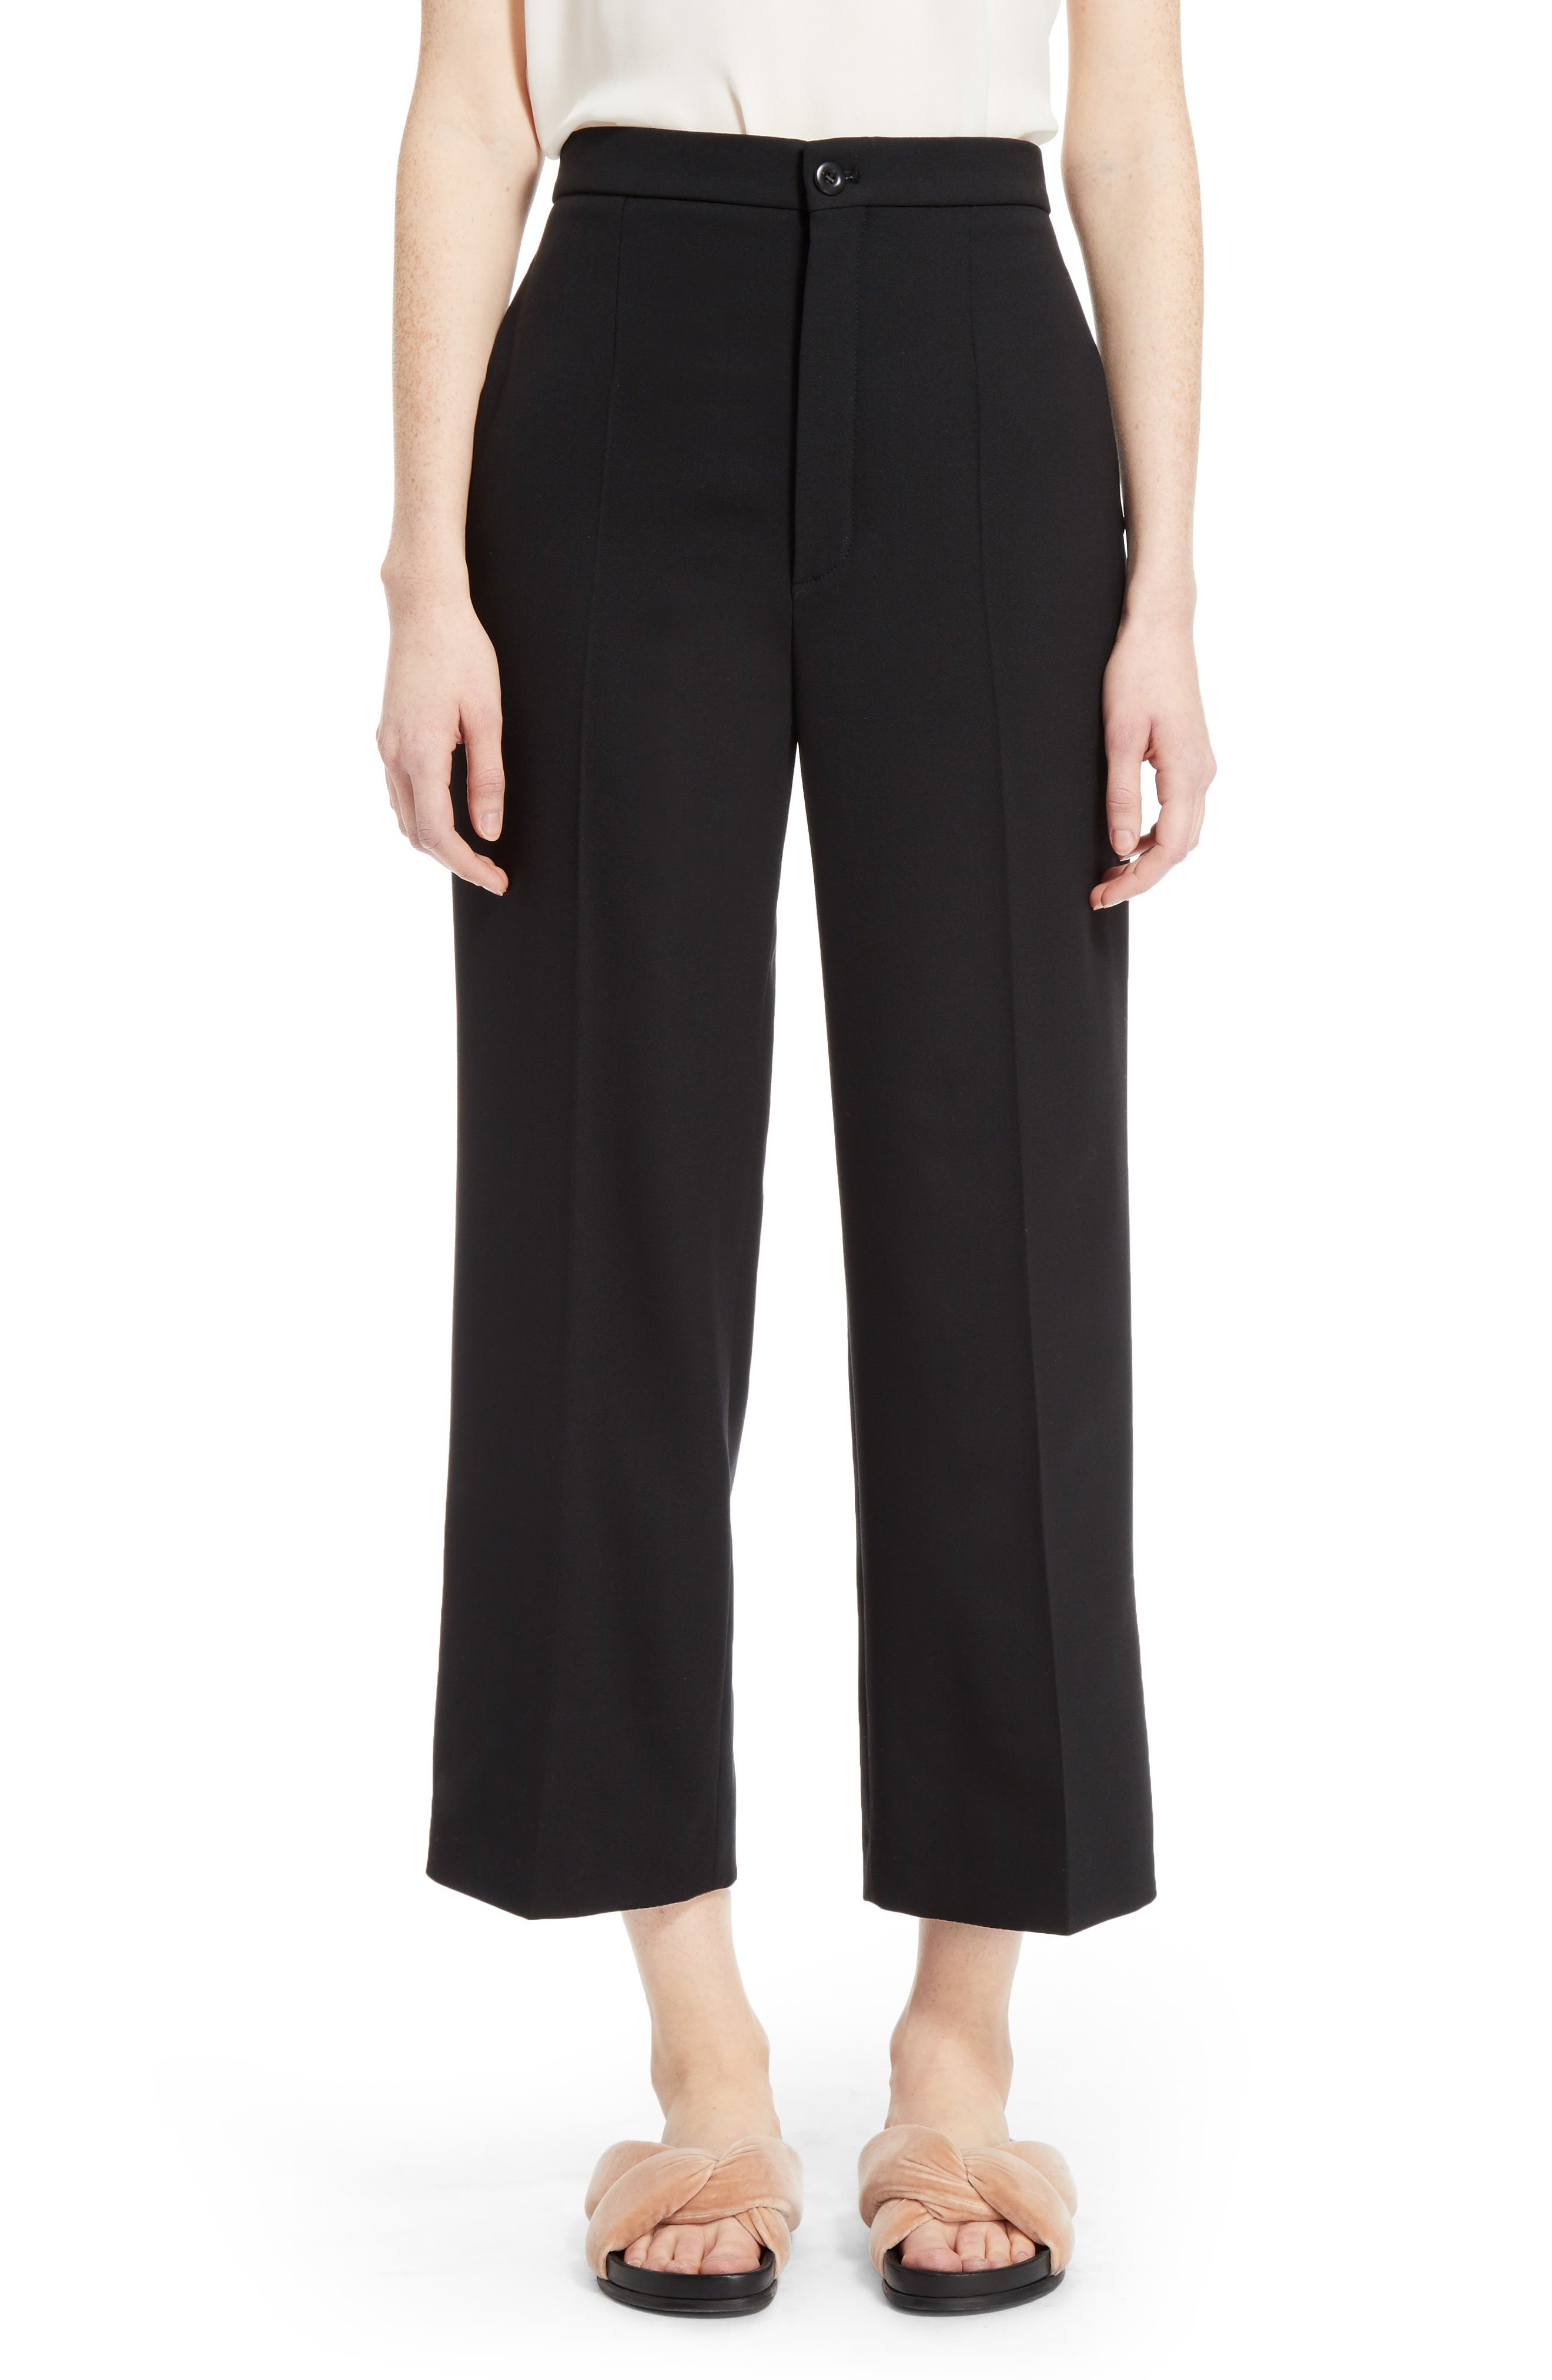 Chloé Stretch Wool Crop Pants